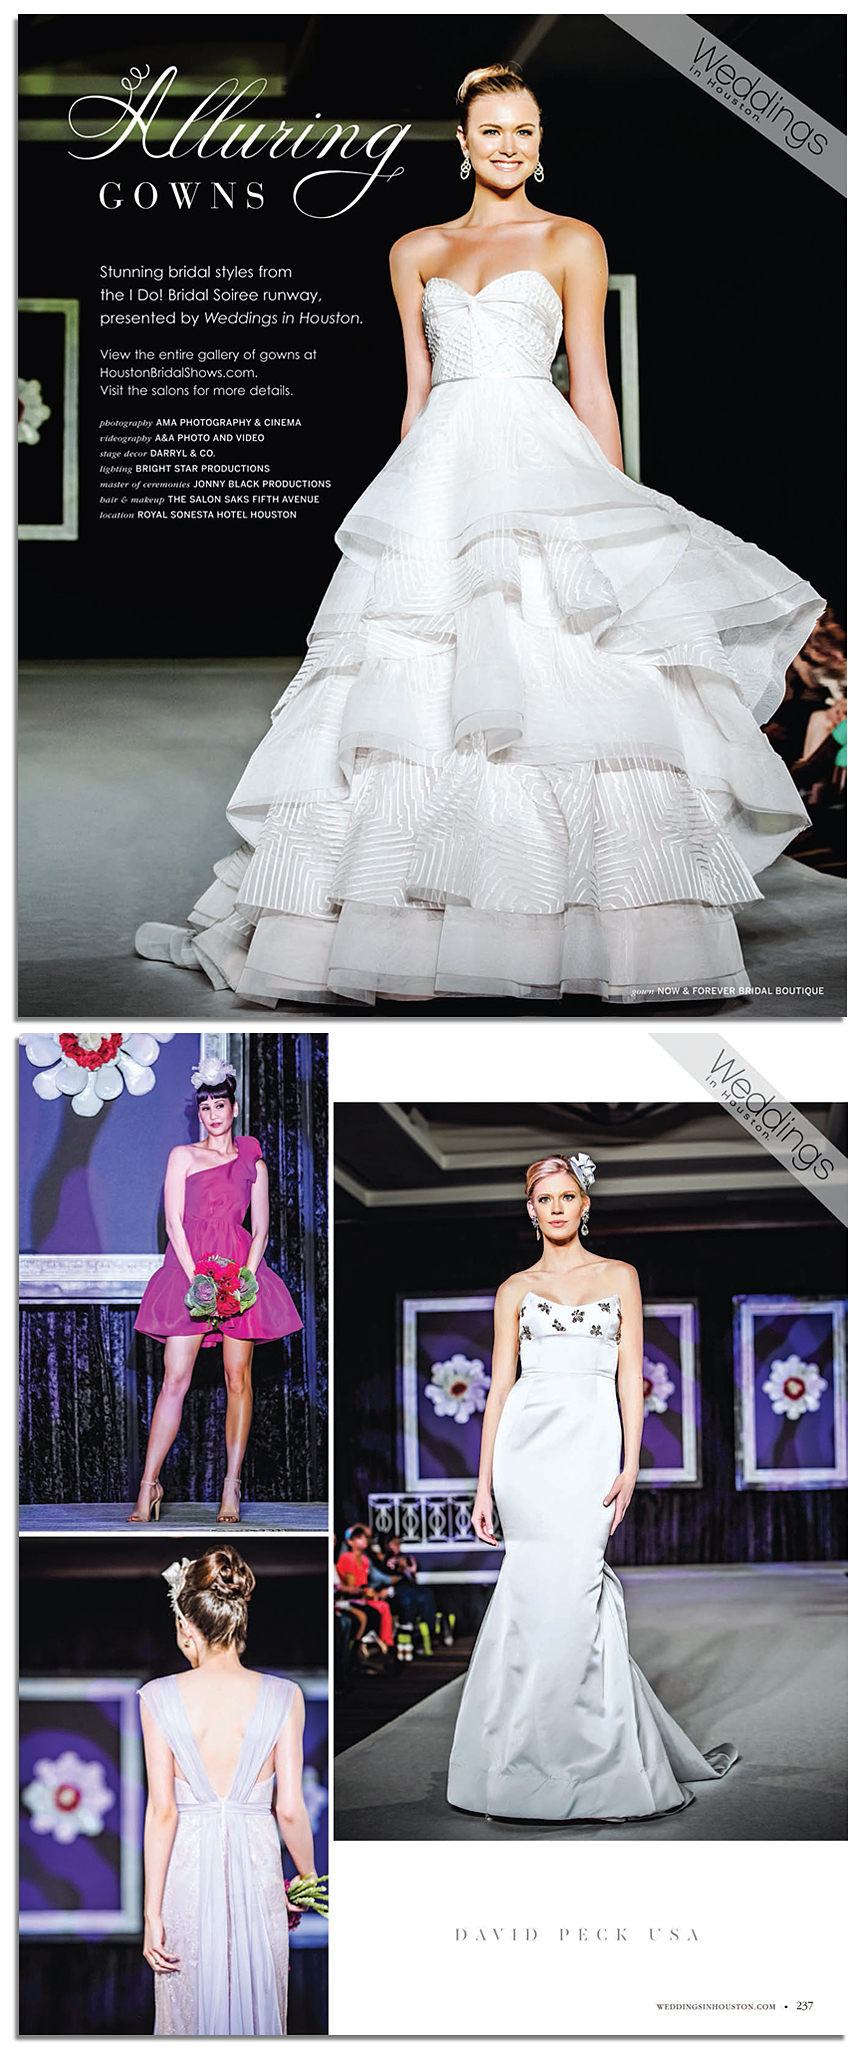 Weddings in Houston Magazine